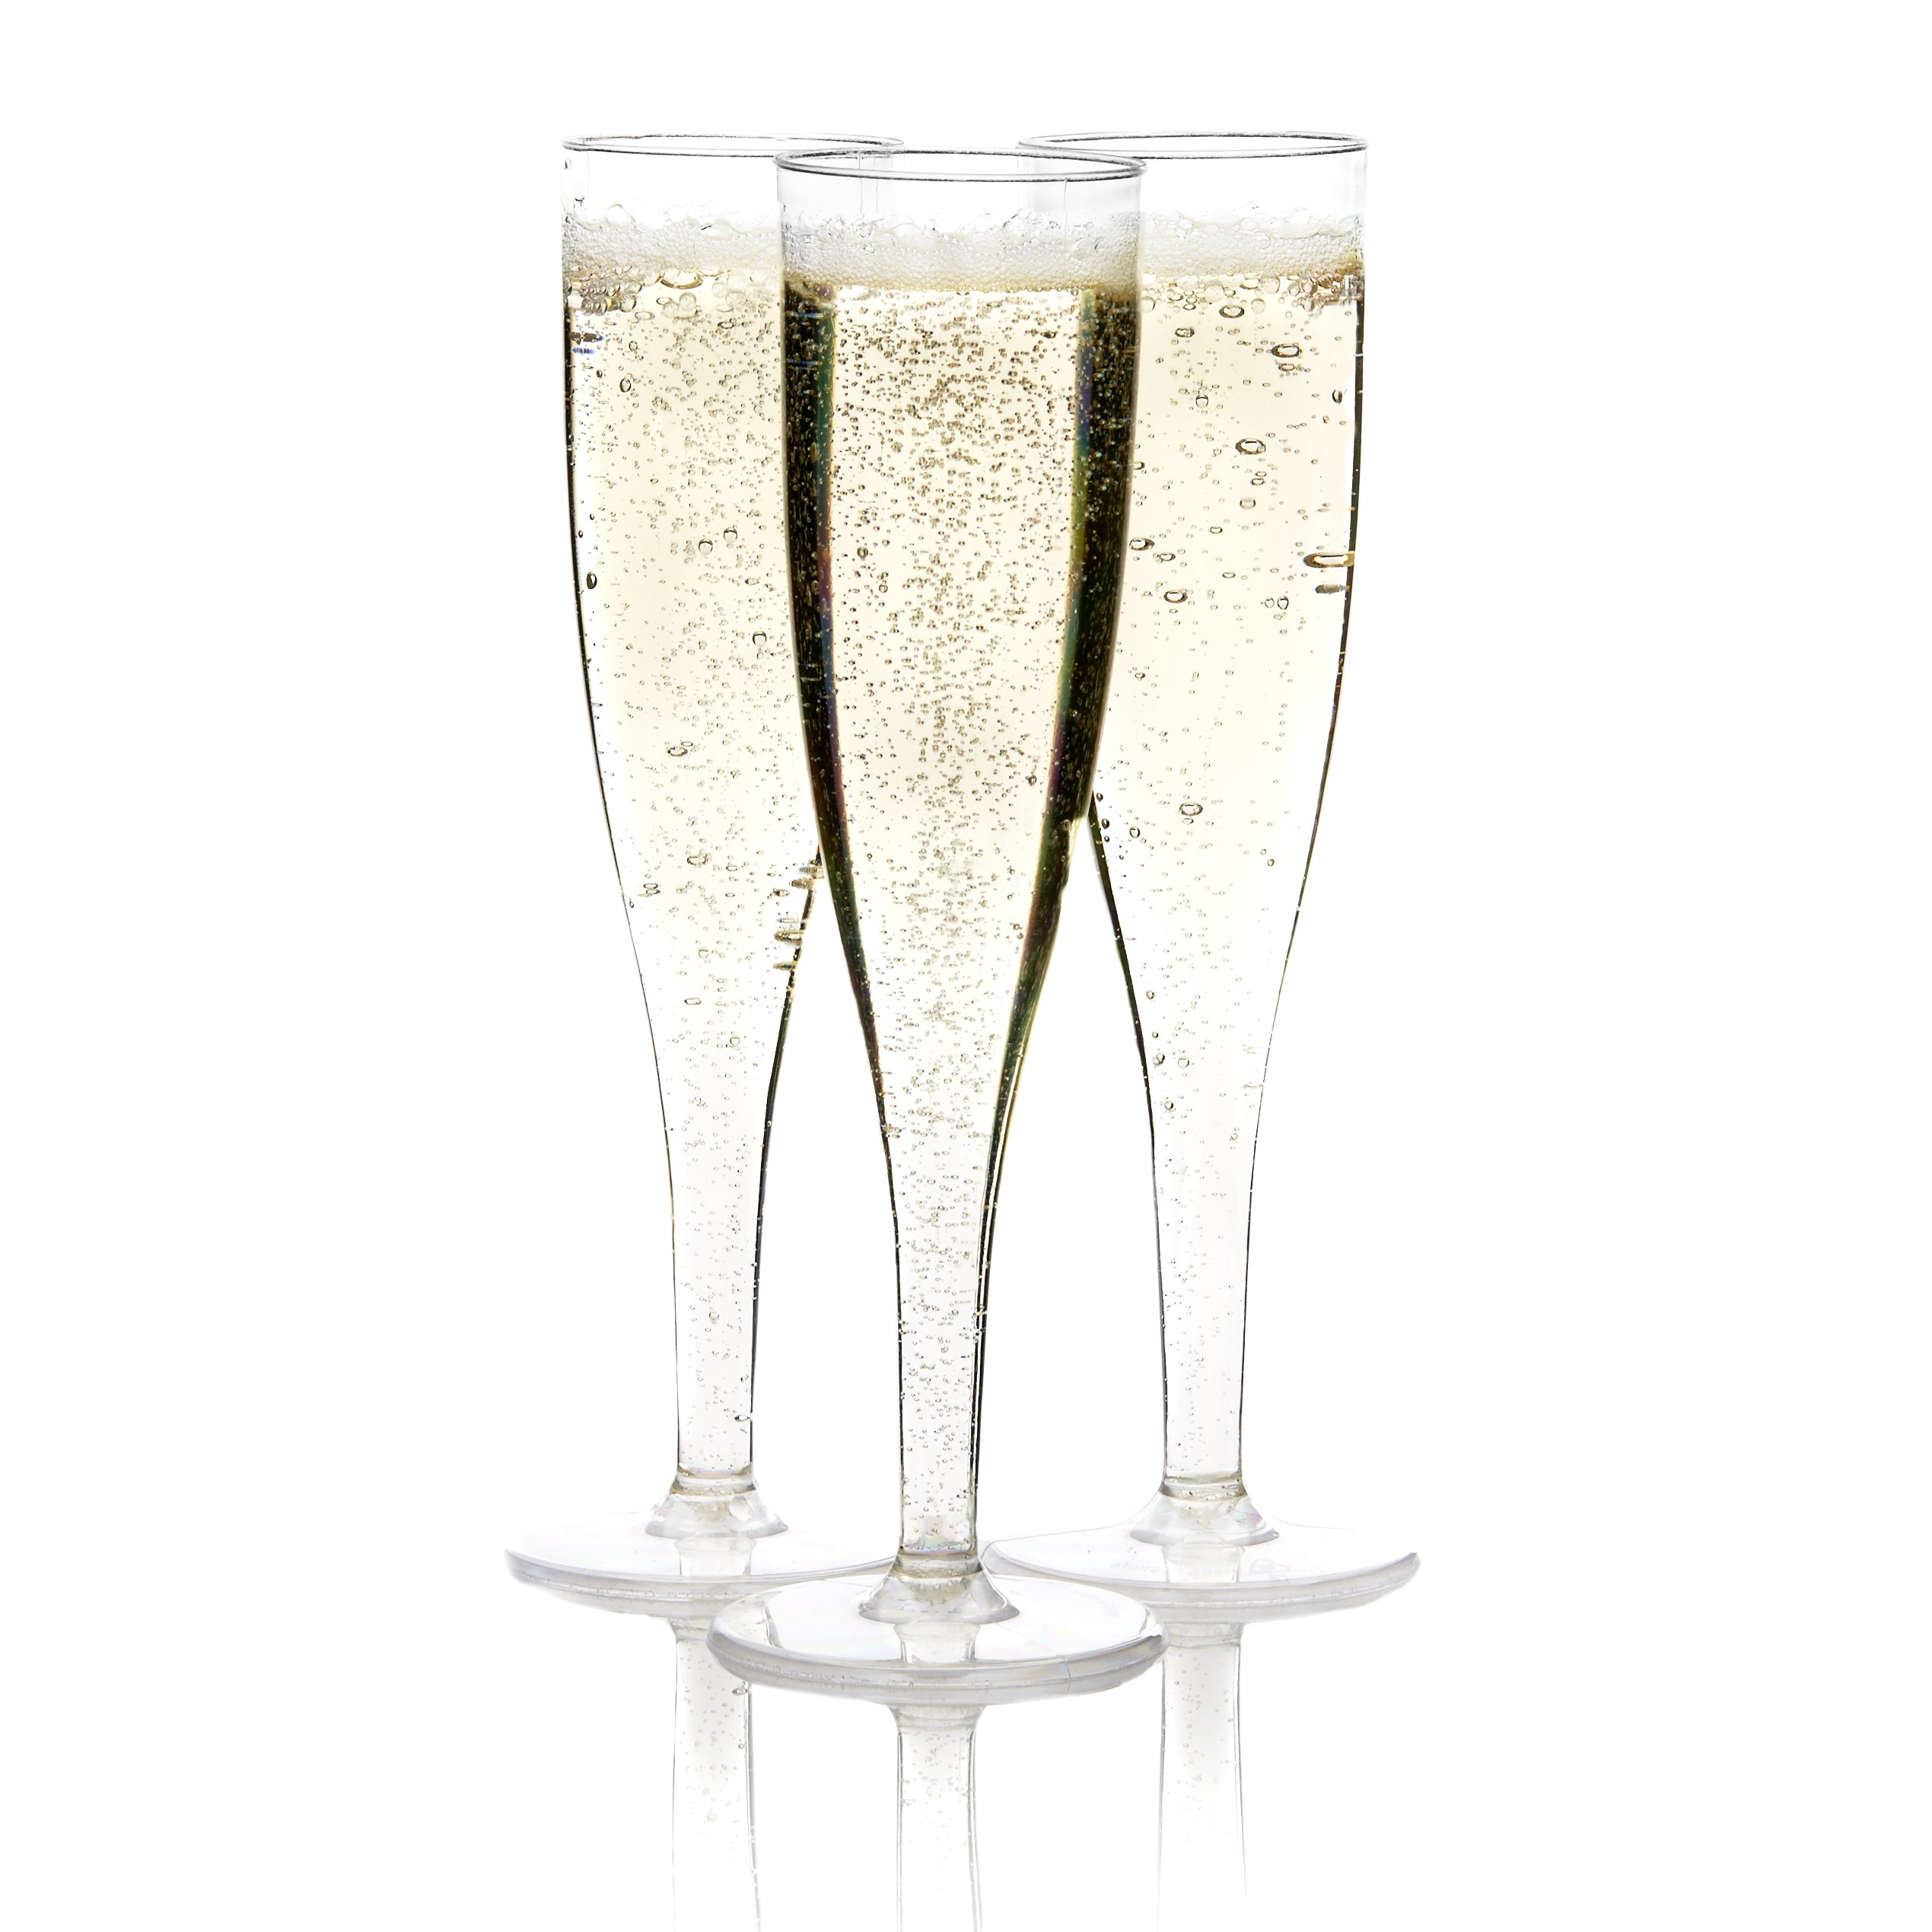 Party Essentials Hard Plastic 1 Piece Champagne Flute, 5-Ounce Capacity, Clear (Case of 100) by Party Essentials (Image #2)